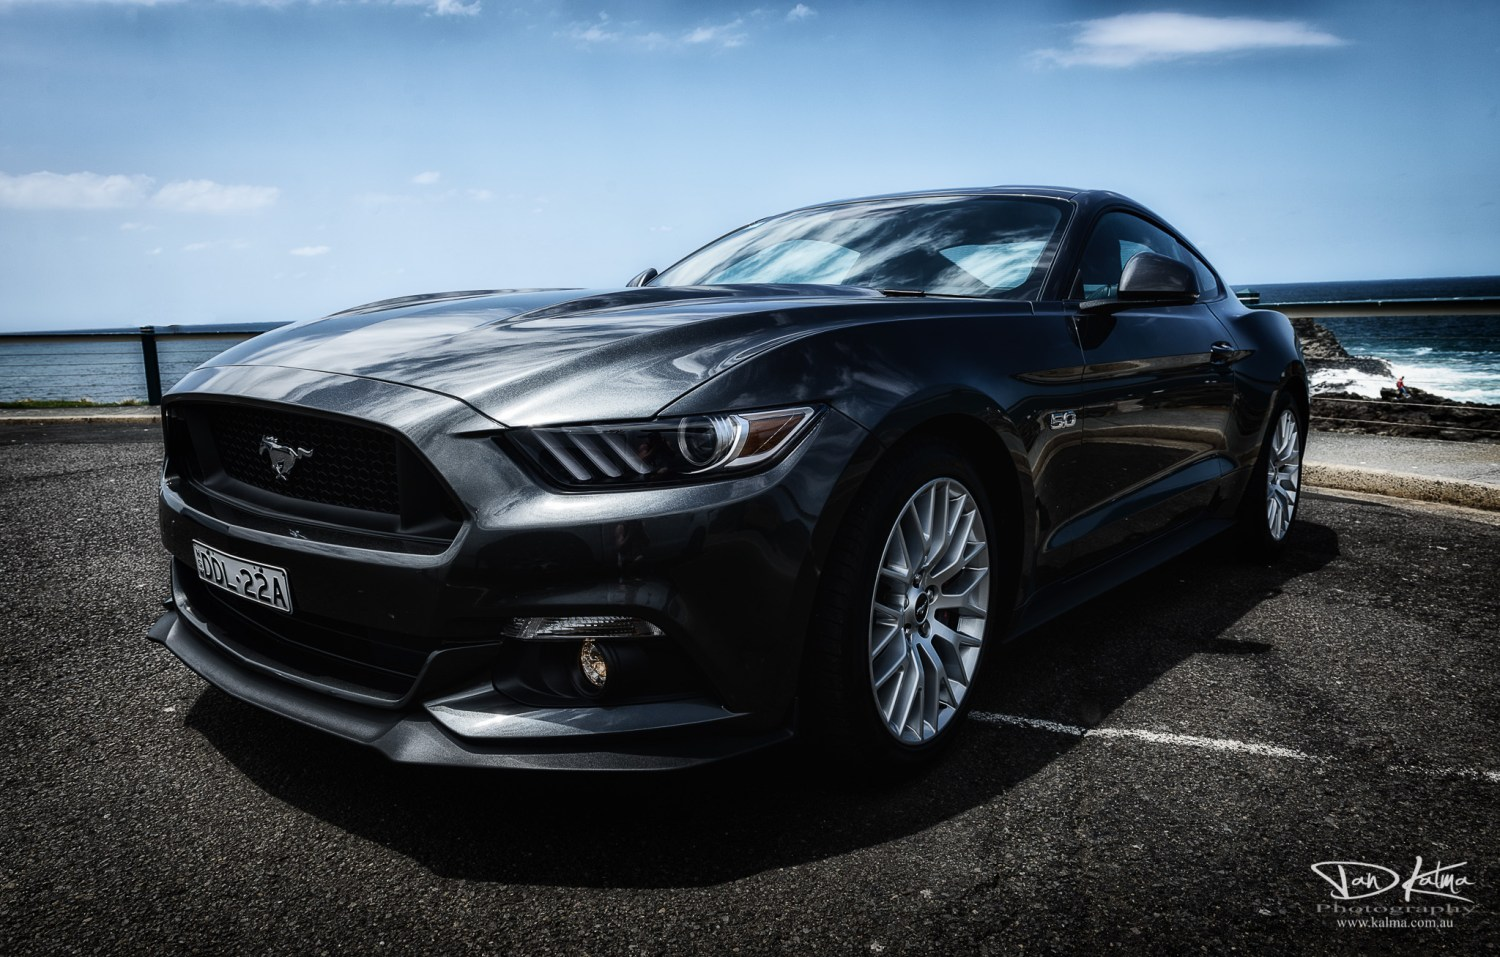 Mustang 5.0 car Kiama blowhole new south wales australia dan kalma photography